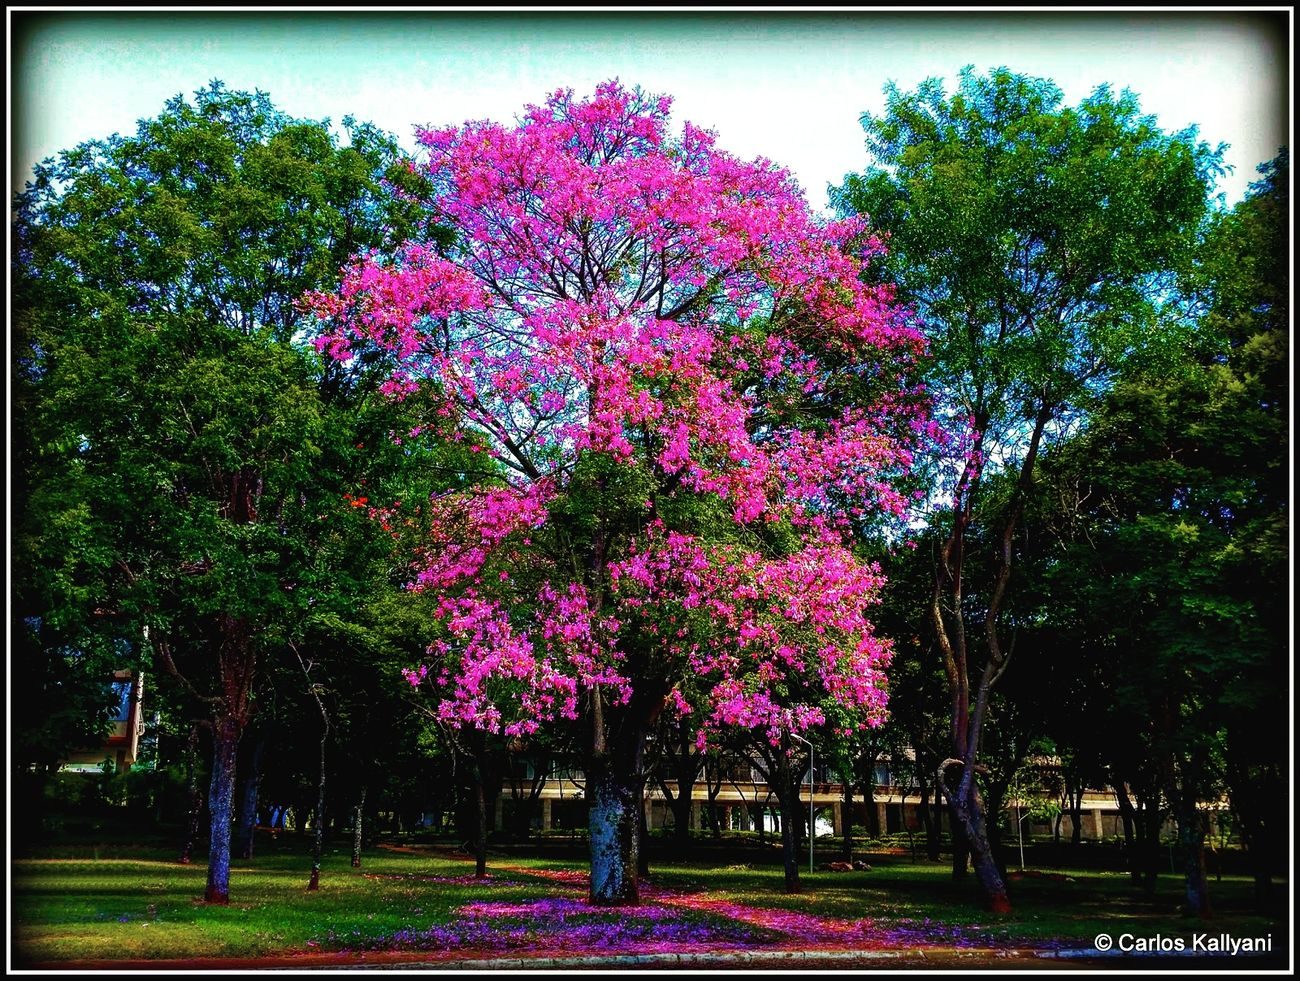 Aniba Rosaeodora. Brasília Tree No People Brasília - Brazil Foto Photo Brasília Photography Fotografia Fotoartegram Fotoarte